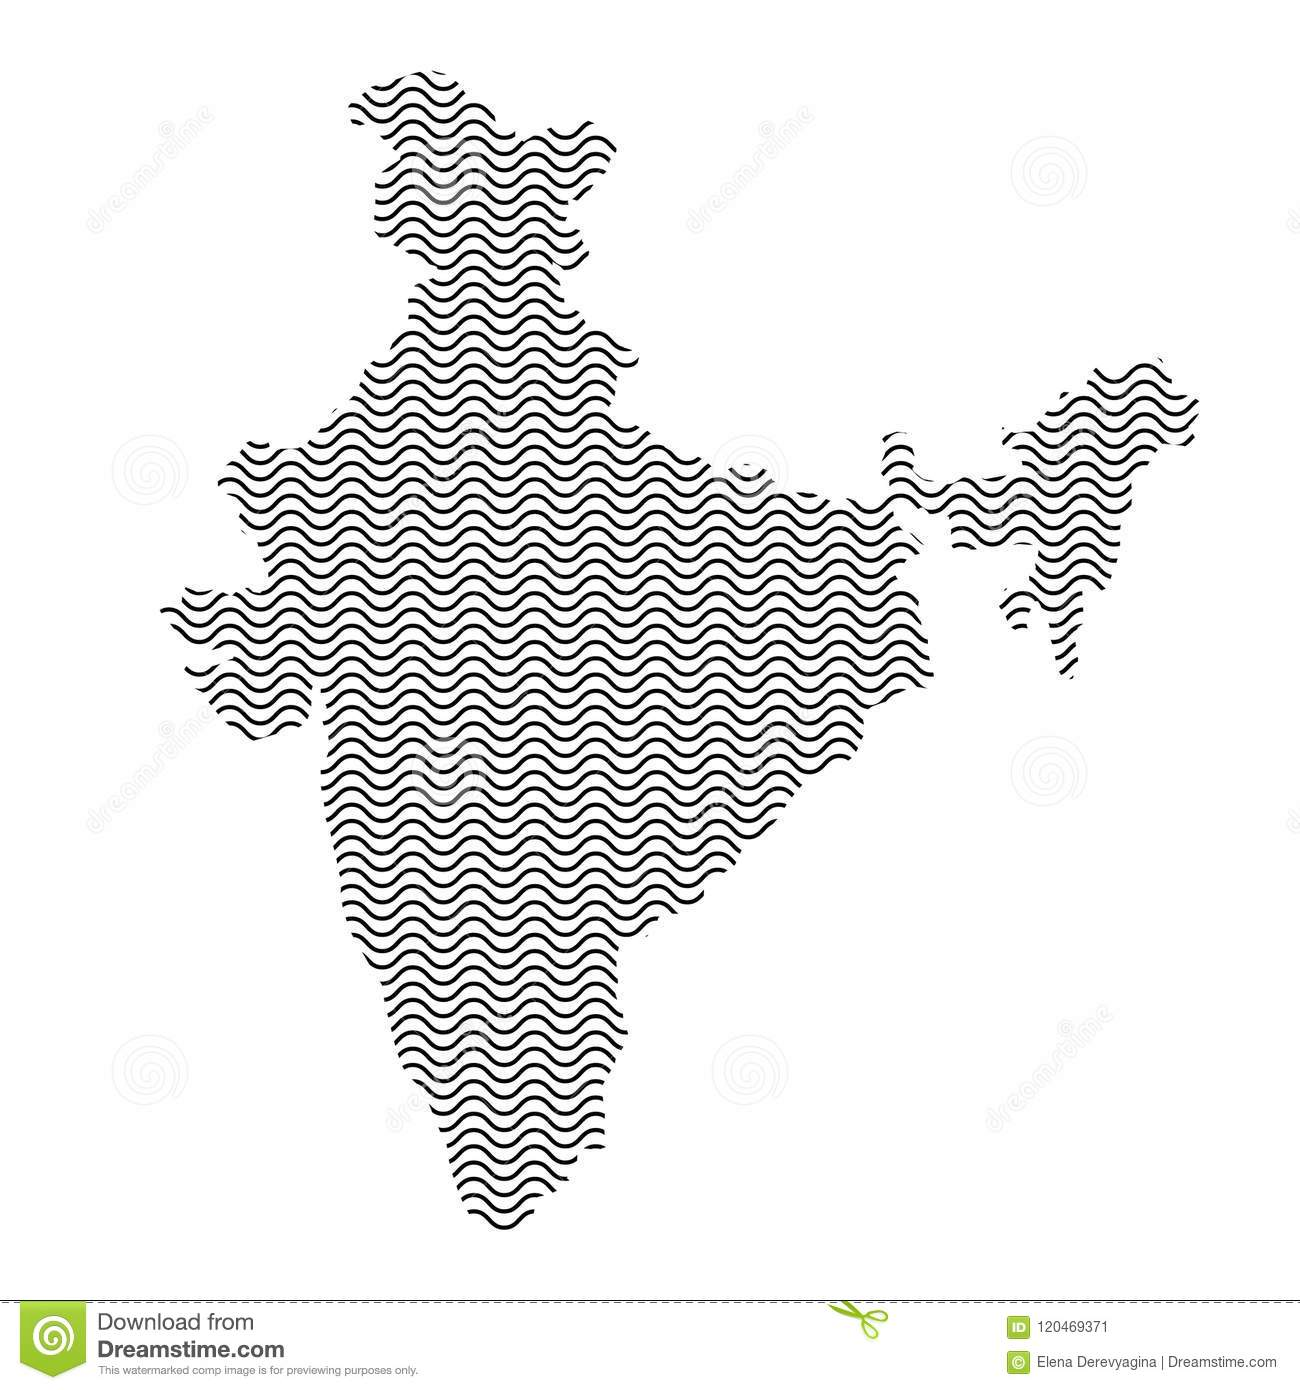 India Map Country Abstract Silhouette Of Wavy Black Repeating Li ...